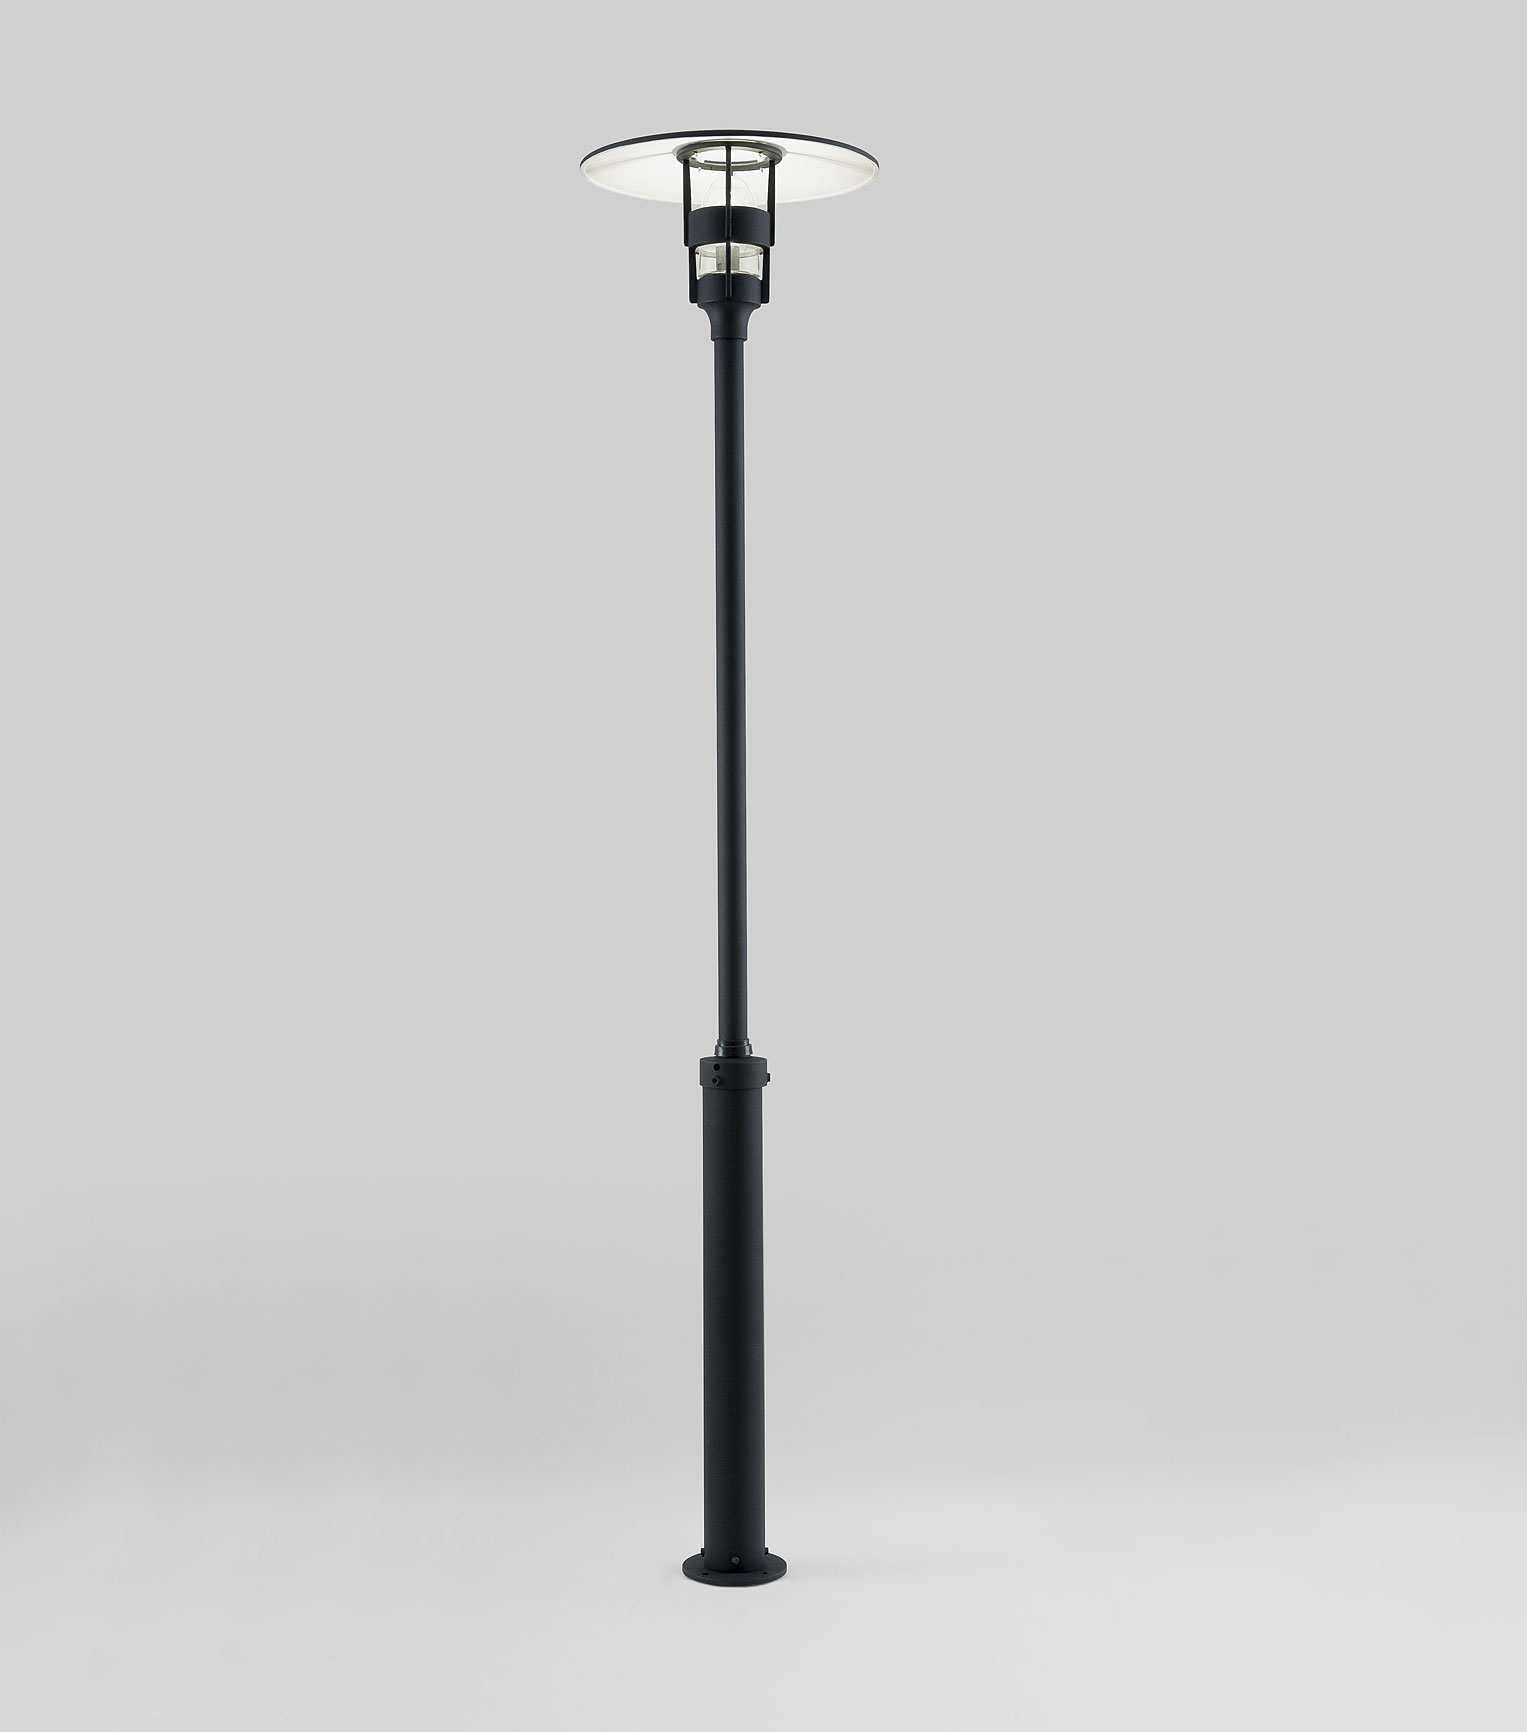 Indoor Street Light Lamp Modern Lamp Post In Black With Low Glare